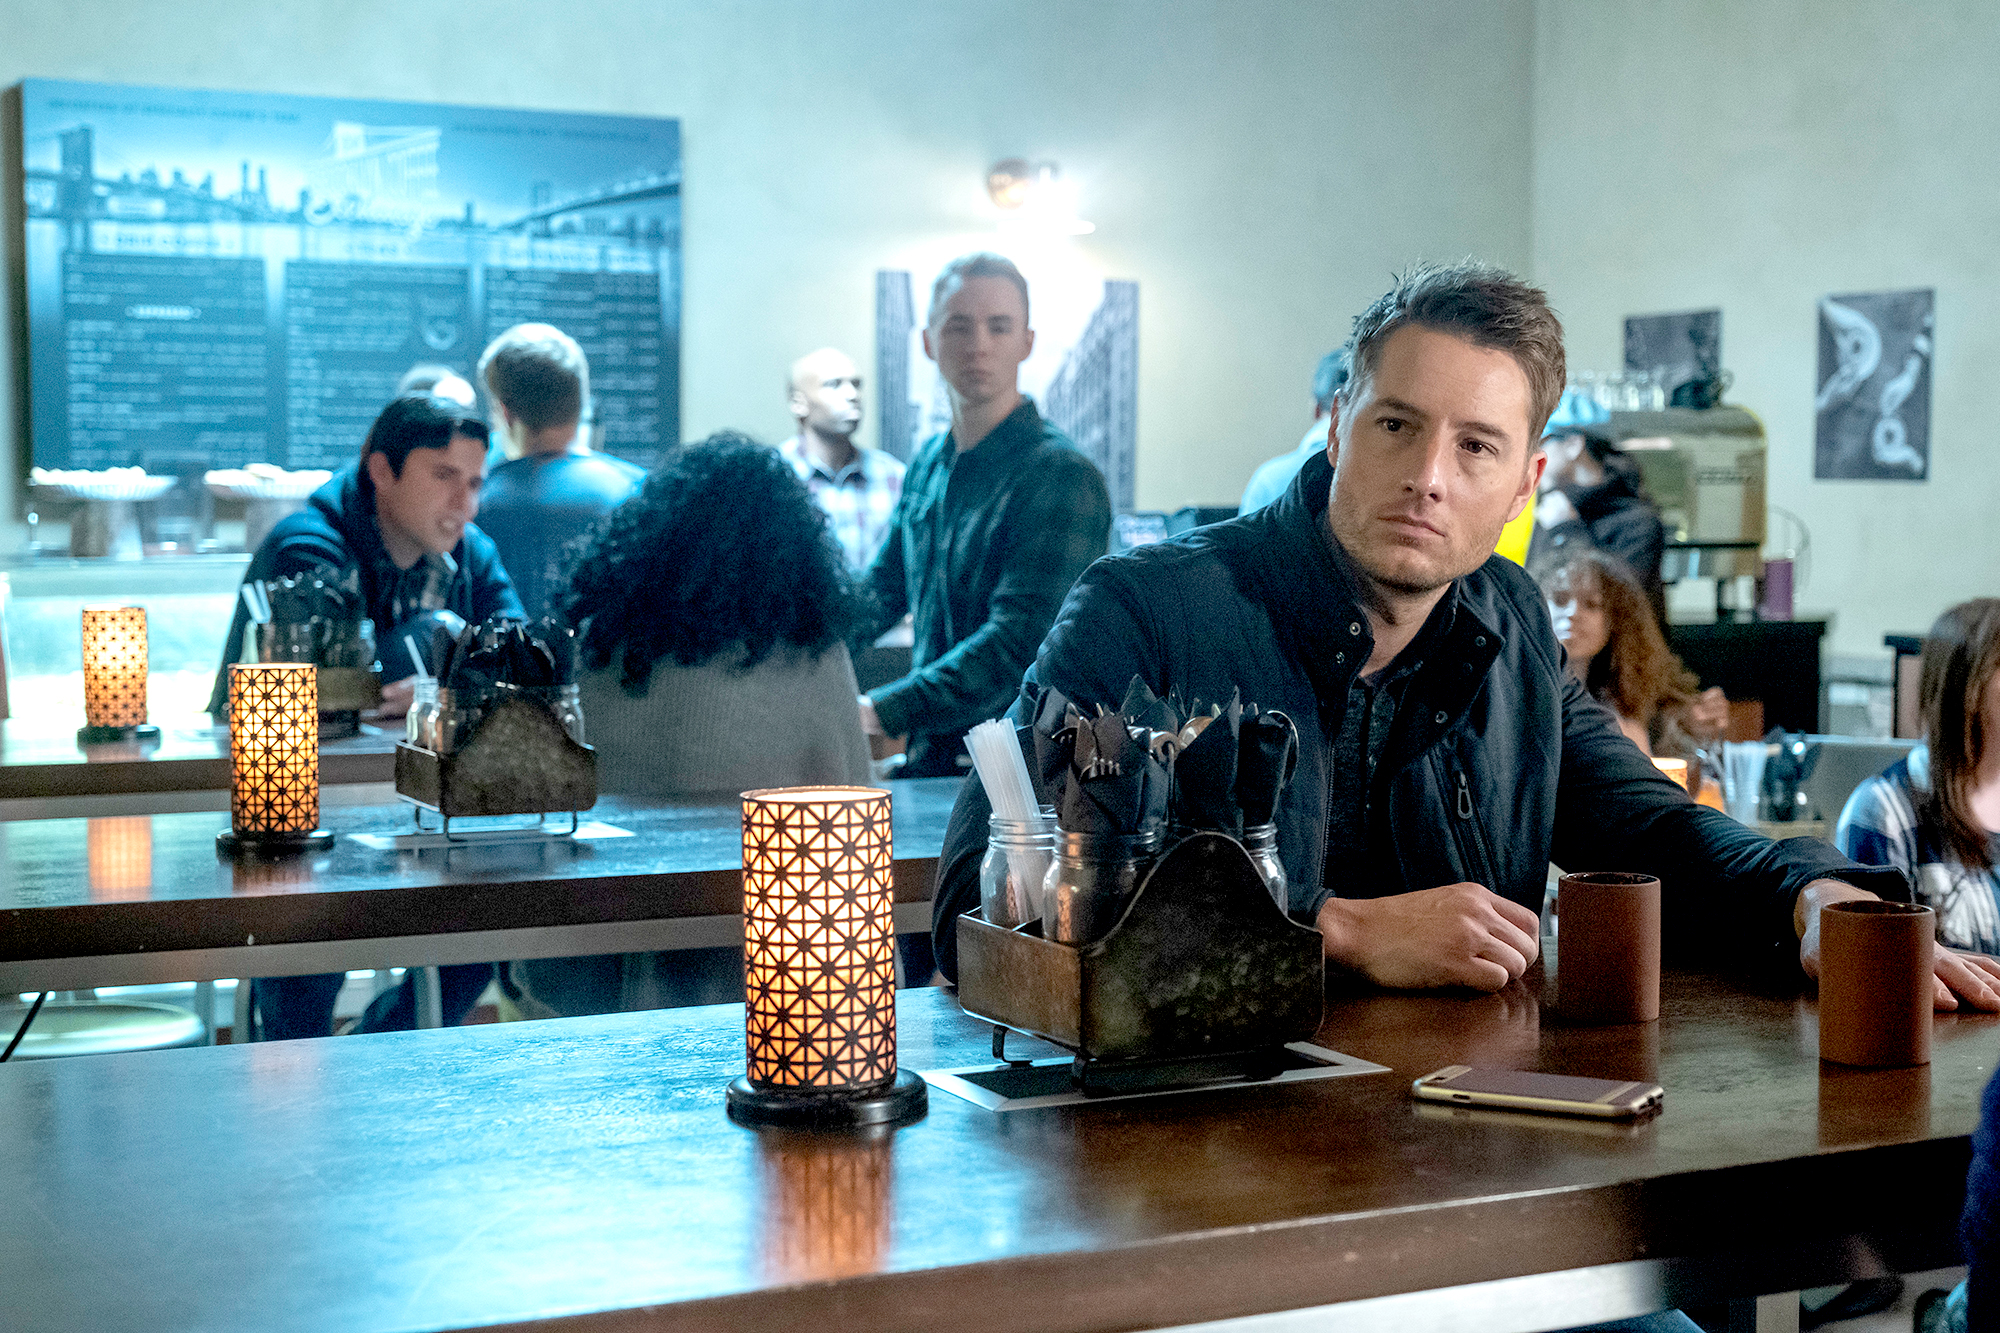 Justin-Hartley-This-Is-Us-recap - Justin Hartley as Kevin Pearson on This Is Us